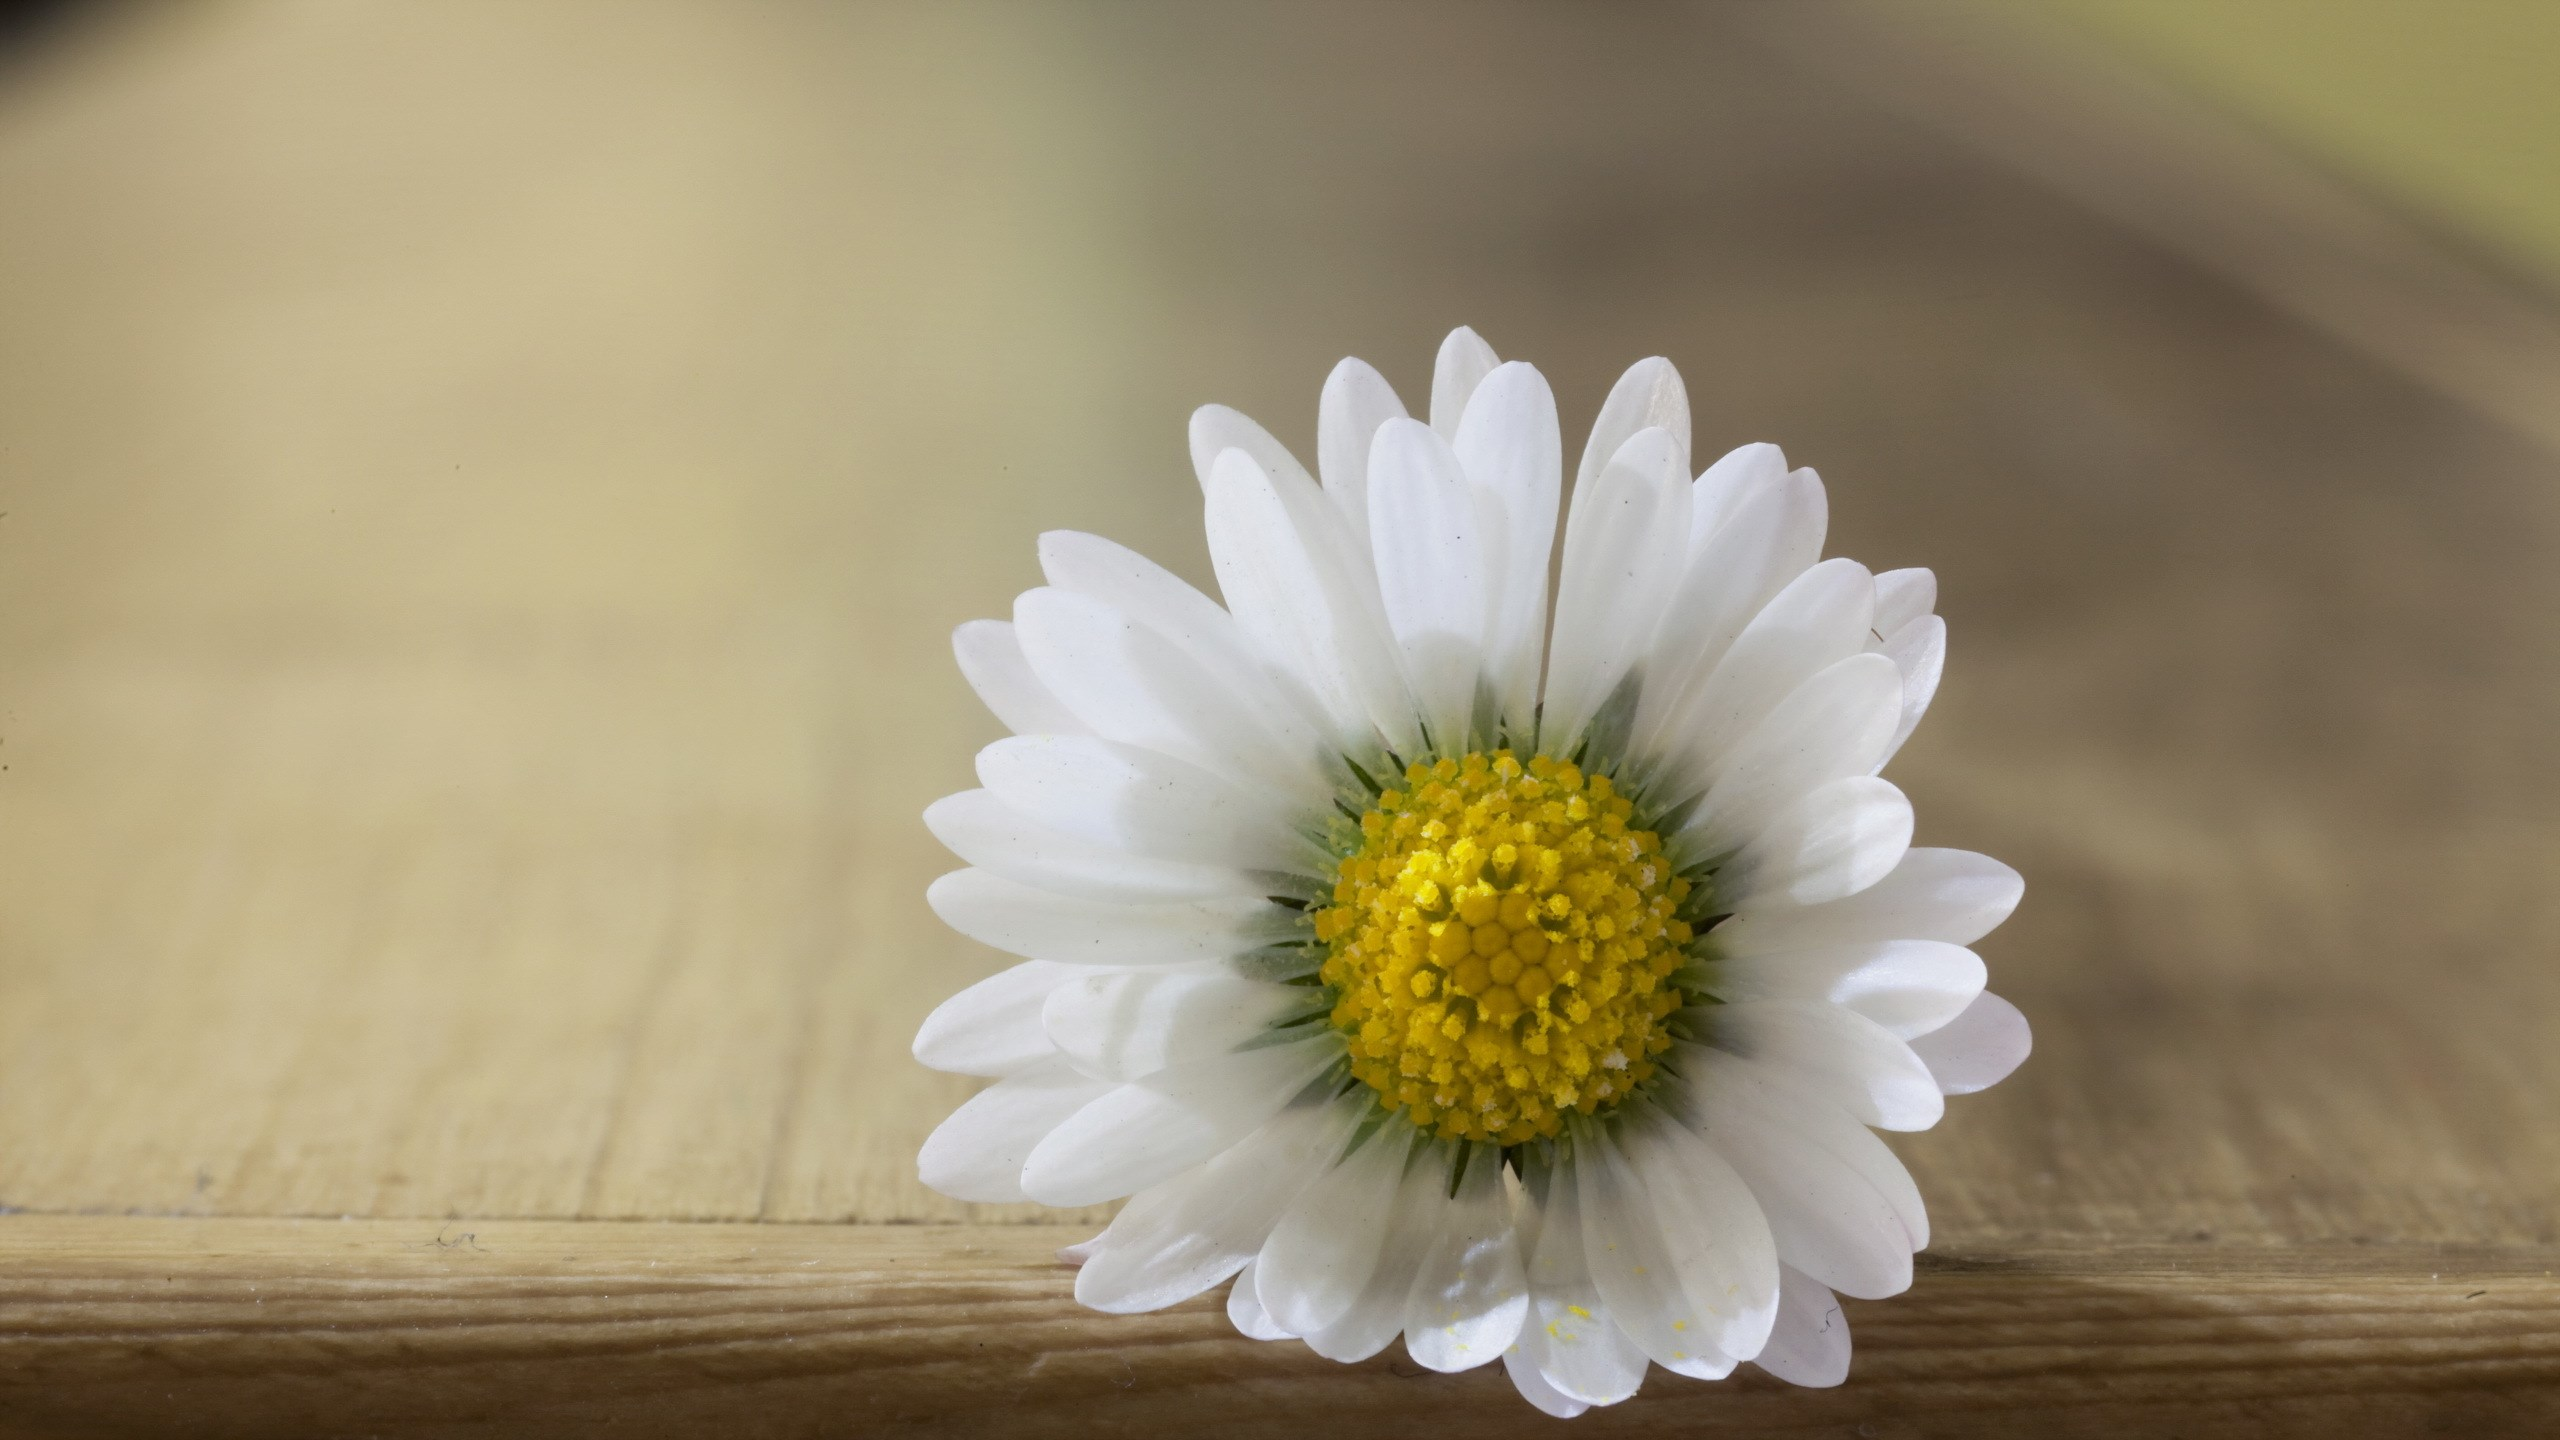 close up, flower, white daisy, petals, macro, pistil, hd wallpaper 1961